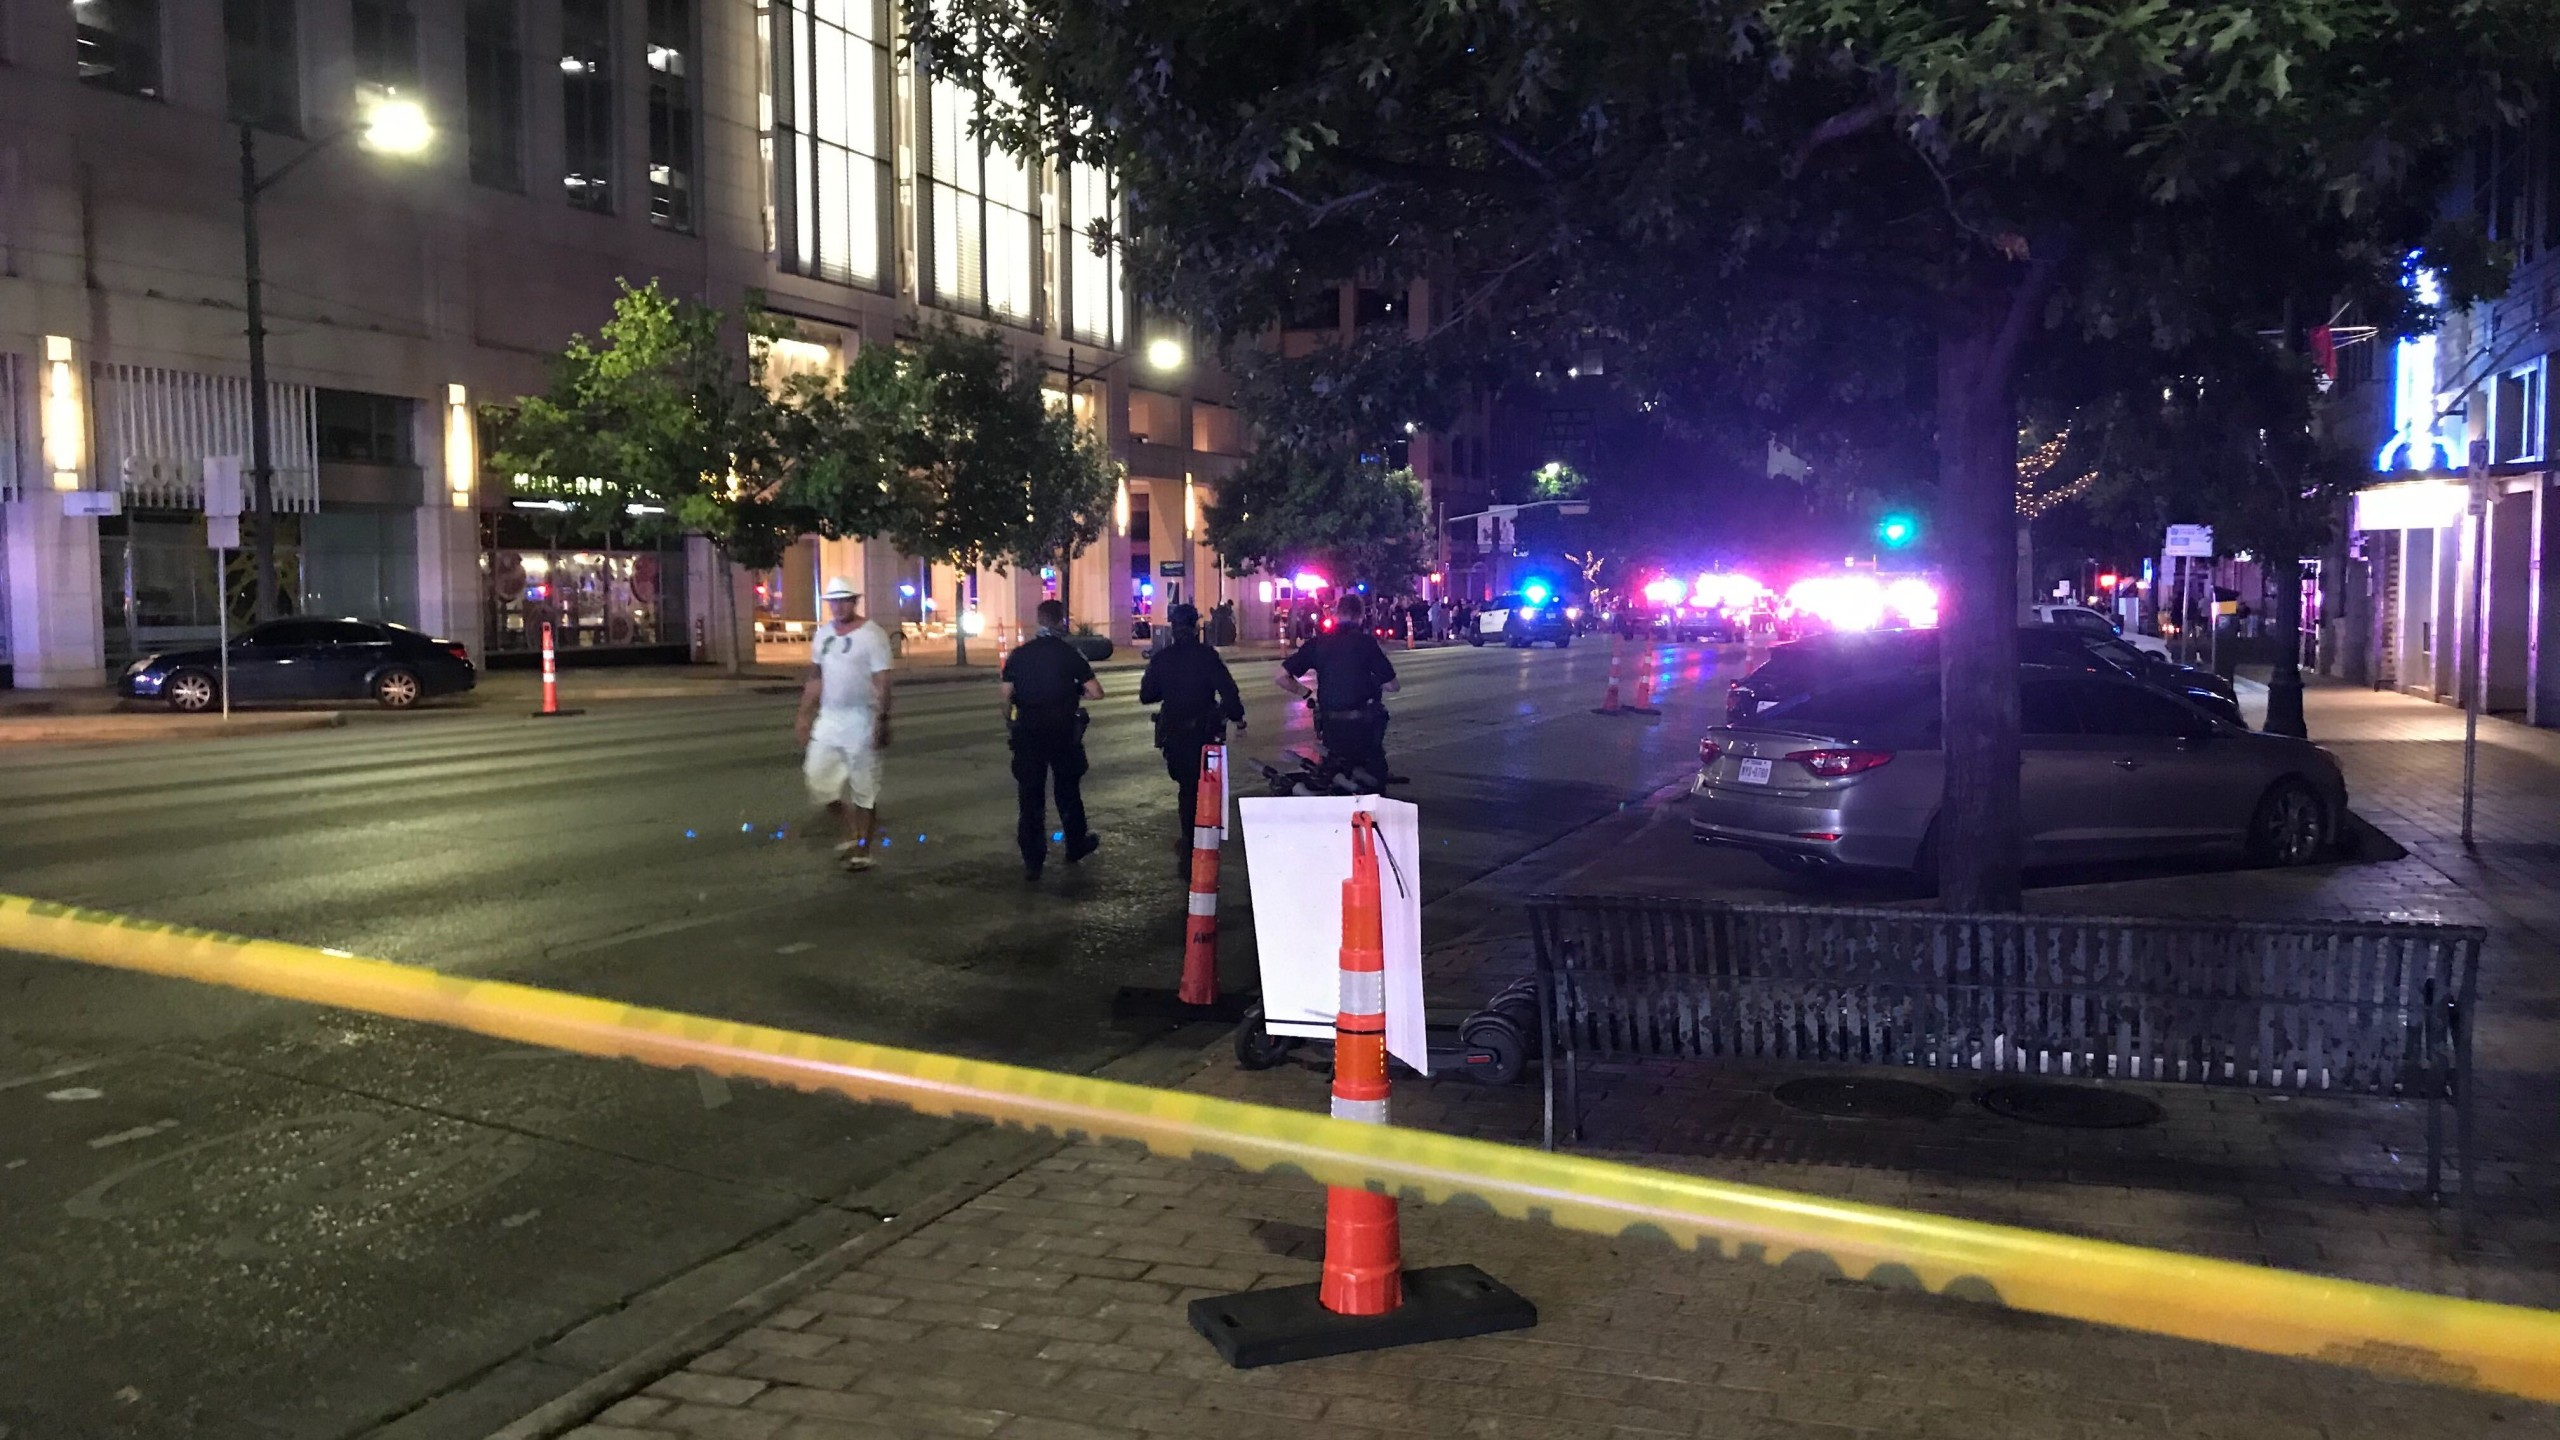 6th street and congress avenue shooting